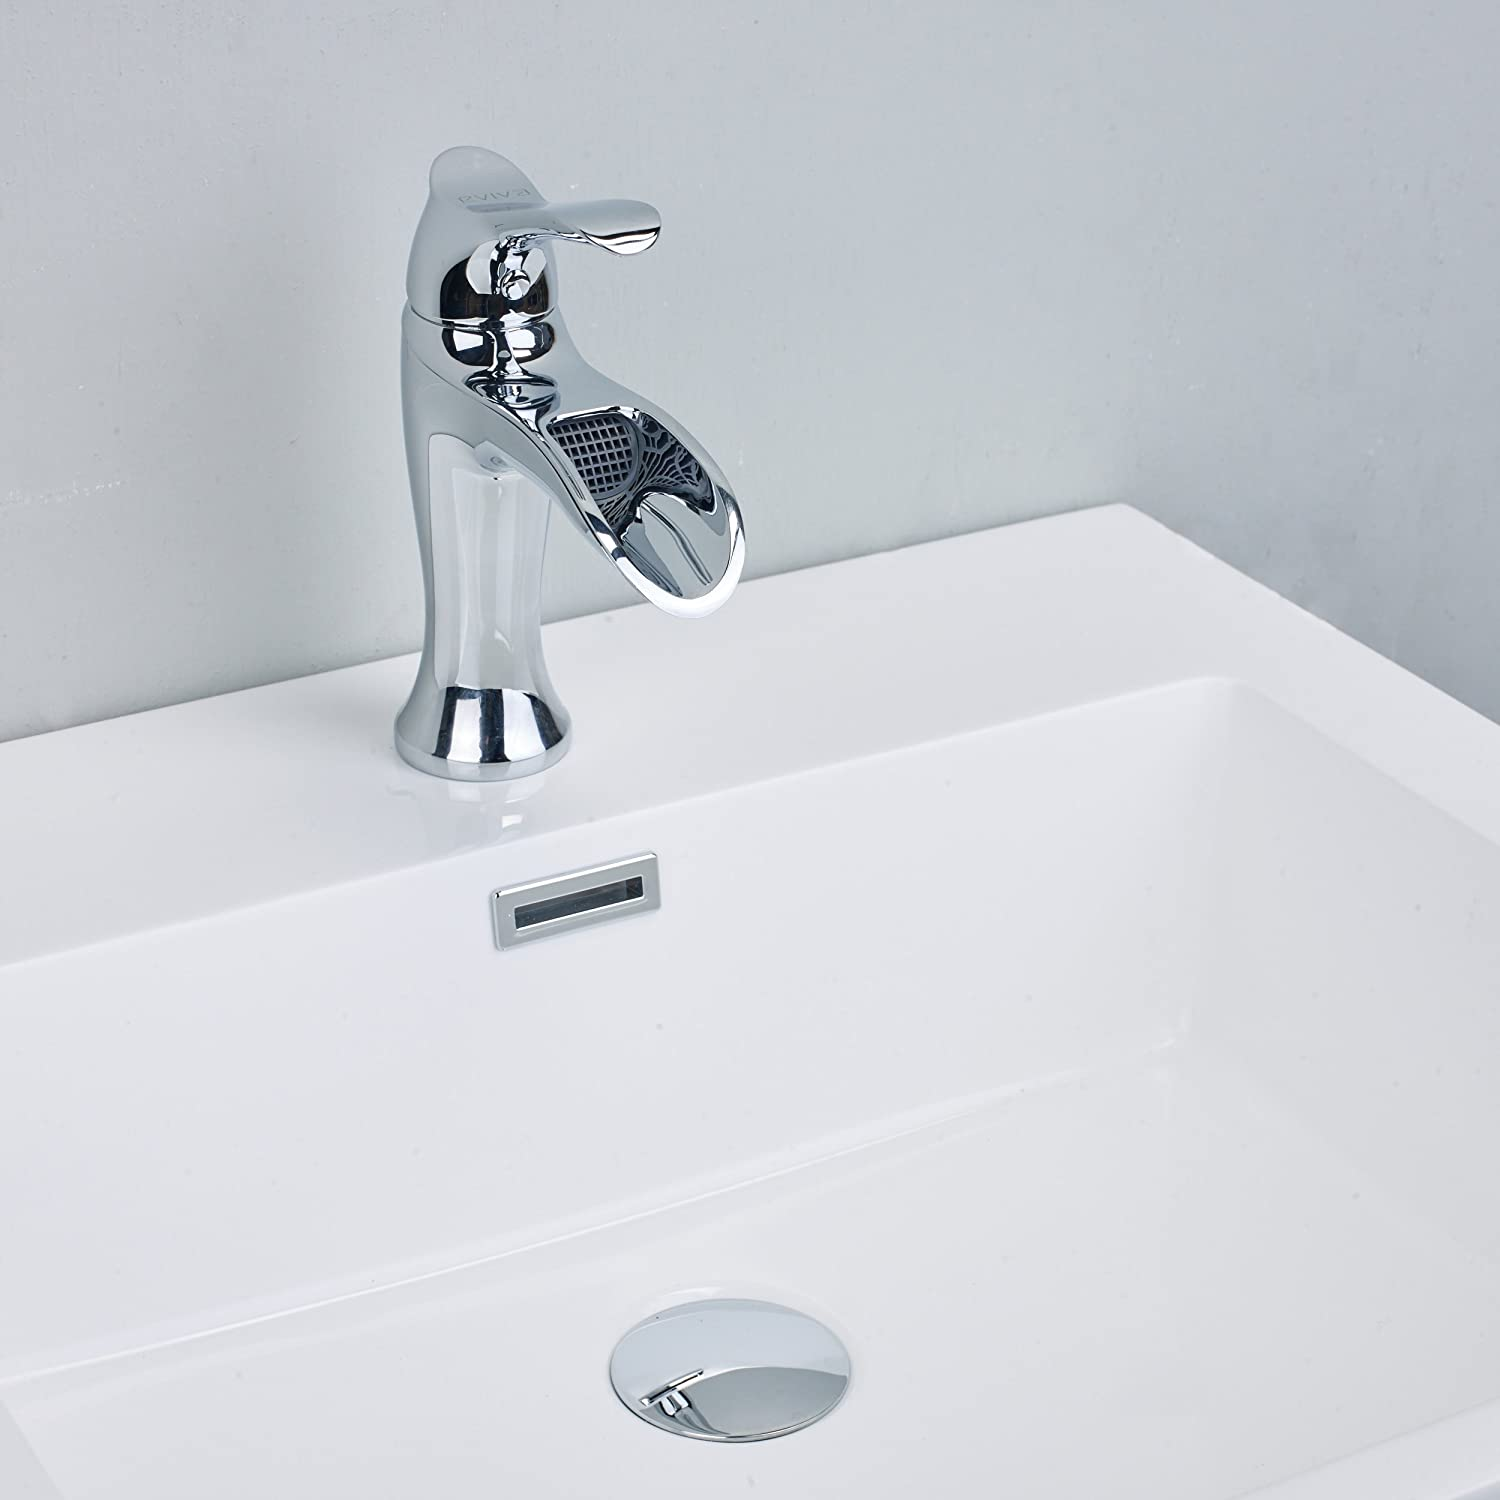 Lever Brushed Nickel Bathroom Sink Faucet Combination GHP-USA Eviva EVFT164BN Swan Luxury Water-Fall Single Handle